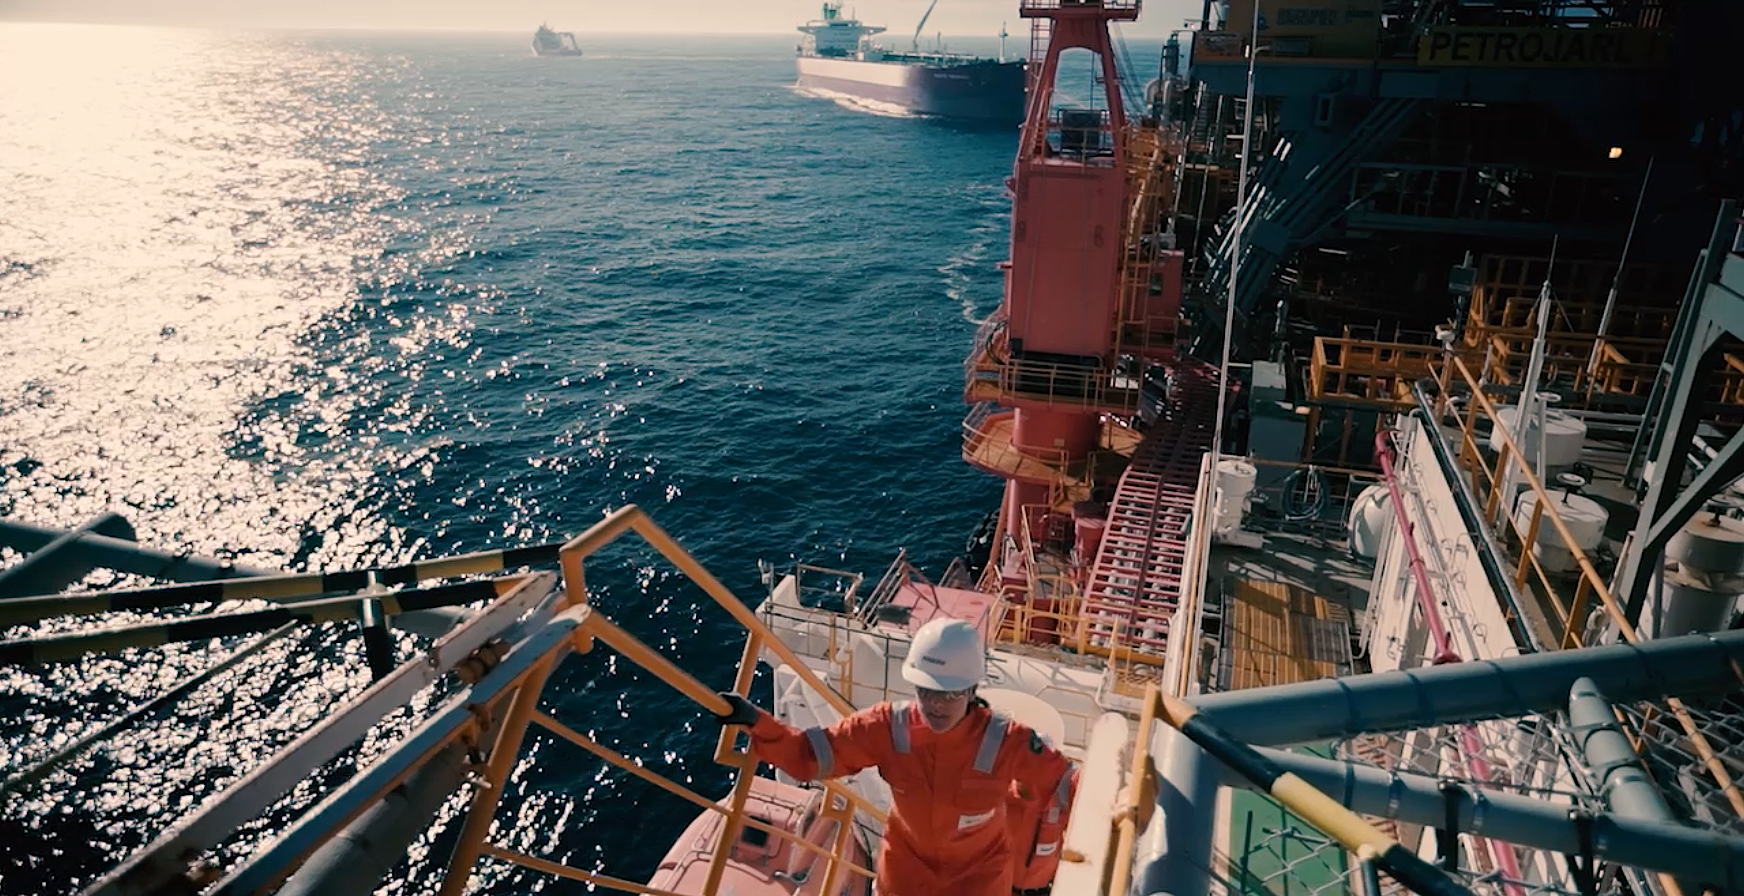 DEEP INTO SAFETY: OUR CULTURE